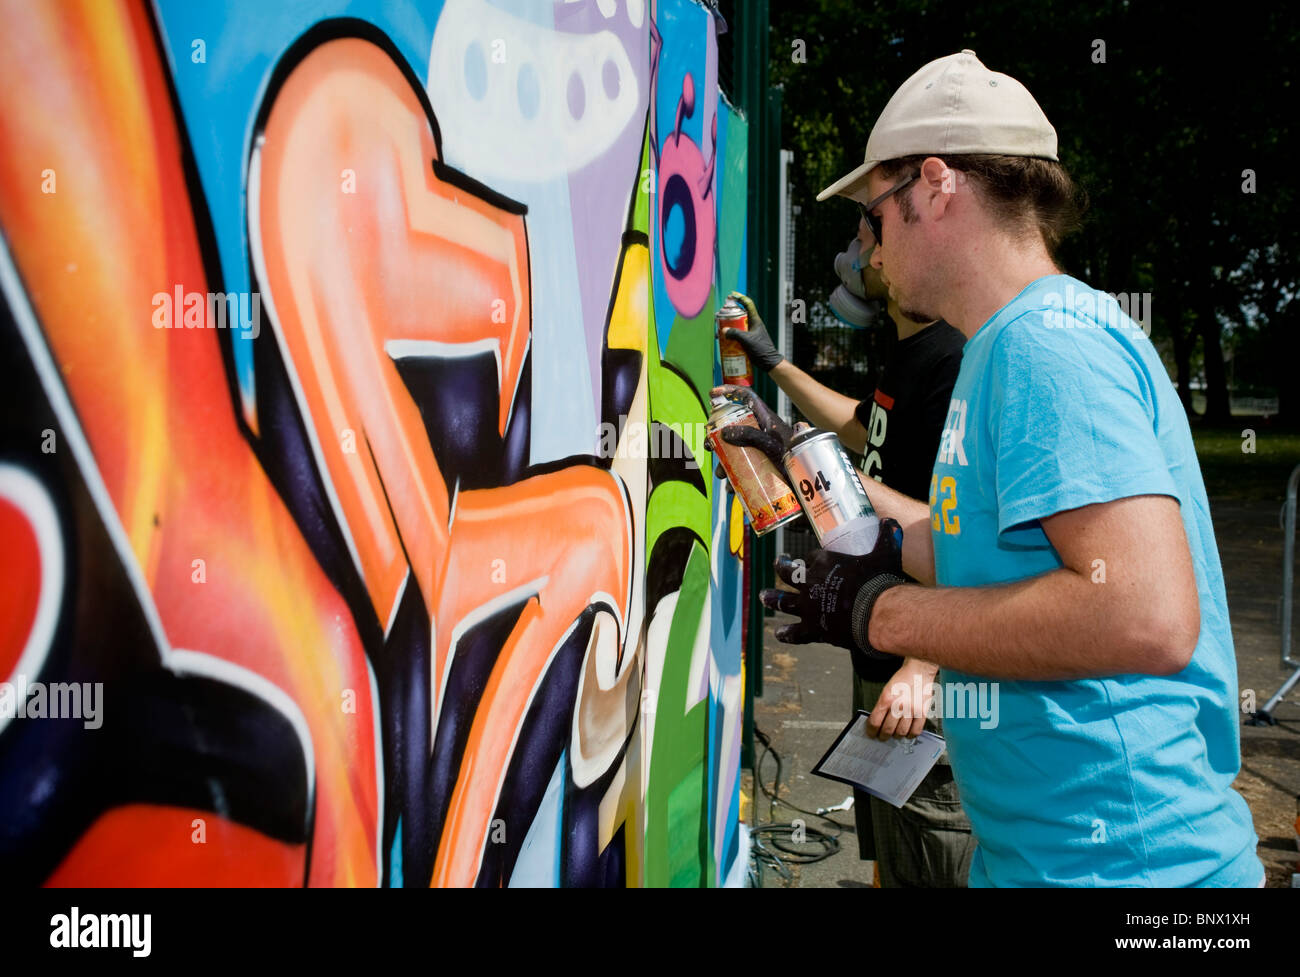 Graffiti Artists At The Brent Respect Festival Making A Mural With Spray Cans Wearing Protective Masks